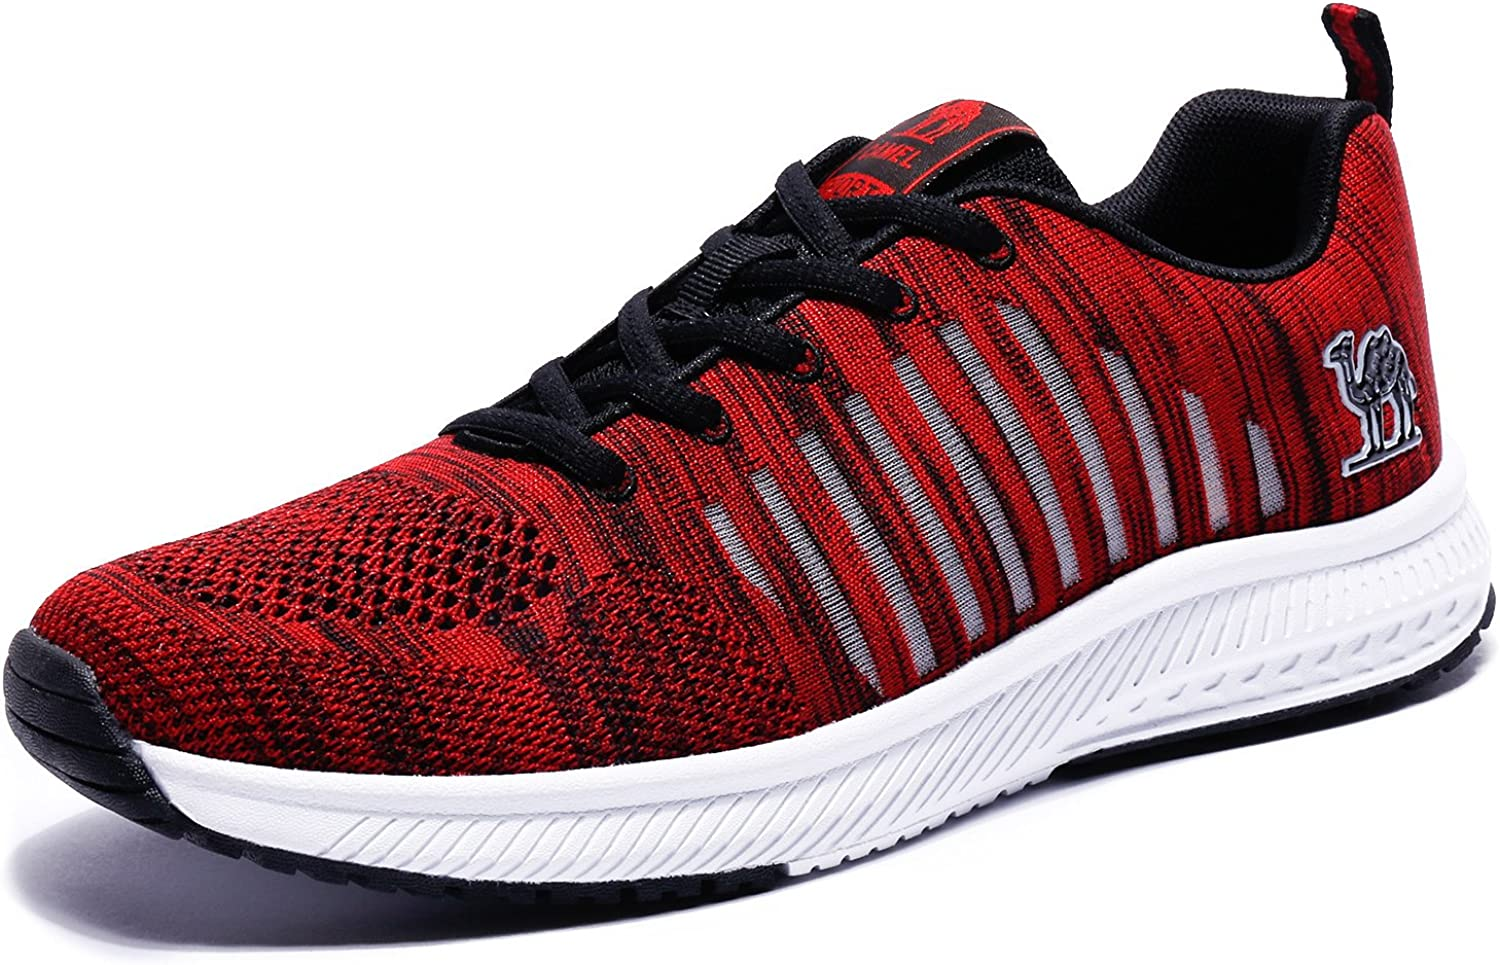 Camel Men s Breathable Mesh Running Shoes Lightweight Athletic Sneakers Sports Non-Slip Fashion Walking Shoes,Red,8 D M US